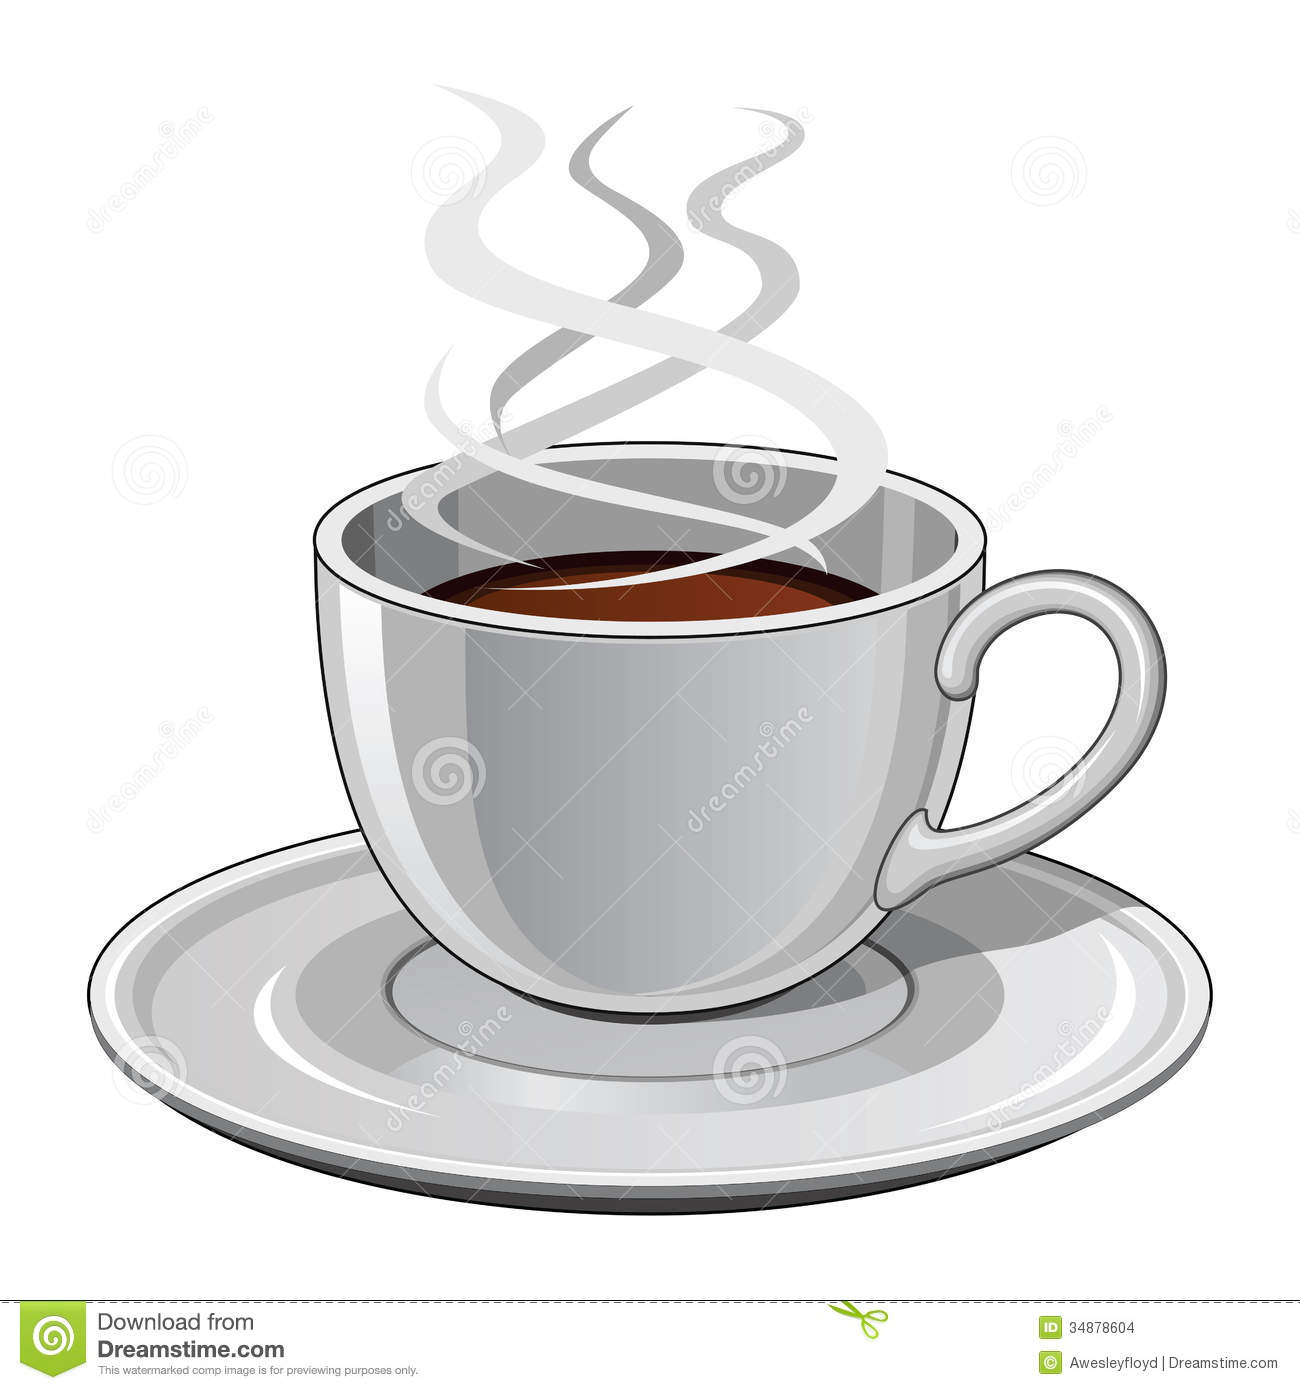 Cup of Coffee stock vector. Illustration of coffee, steam ...